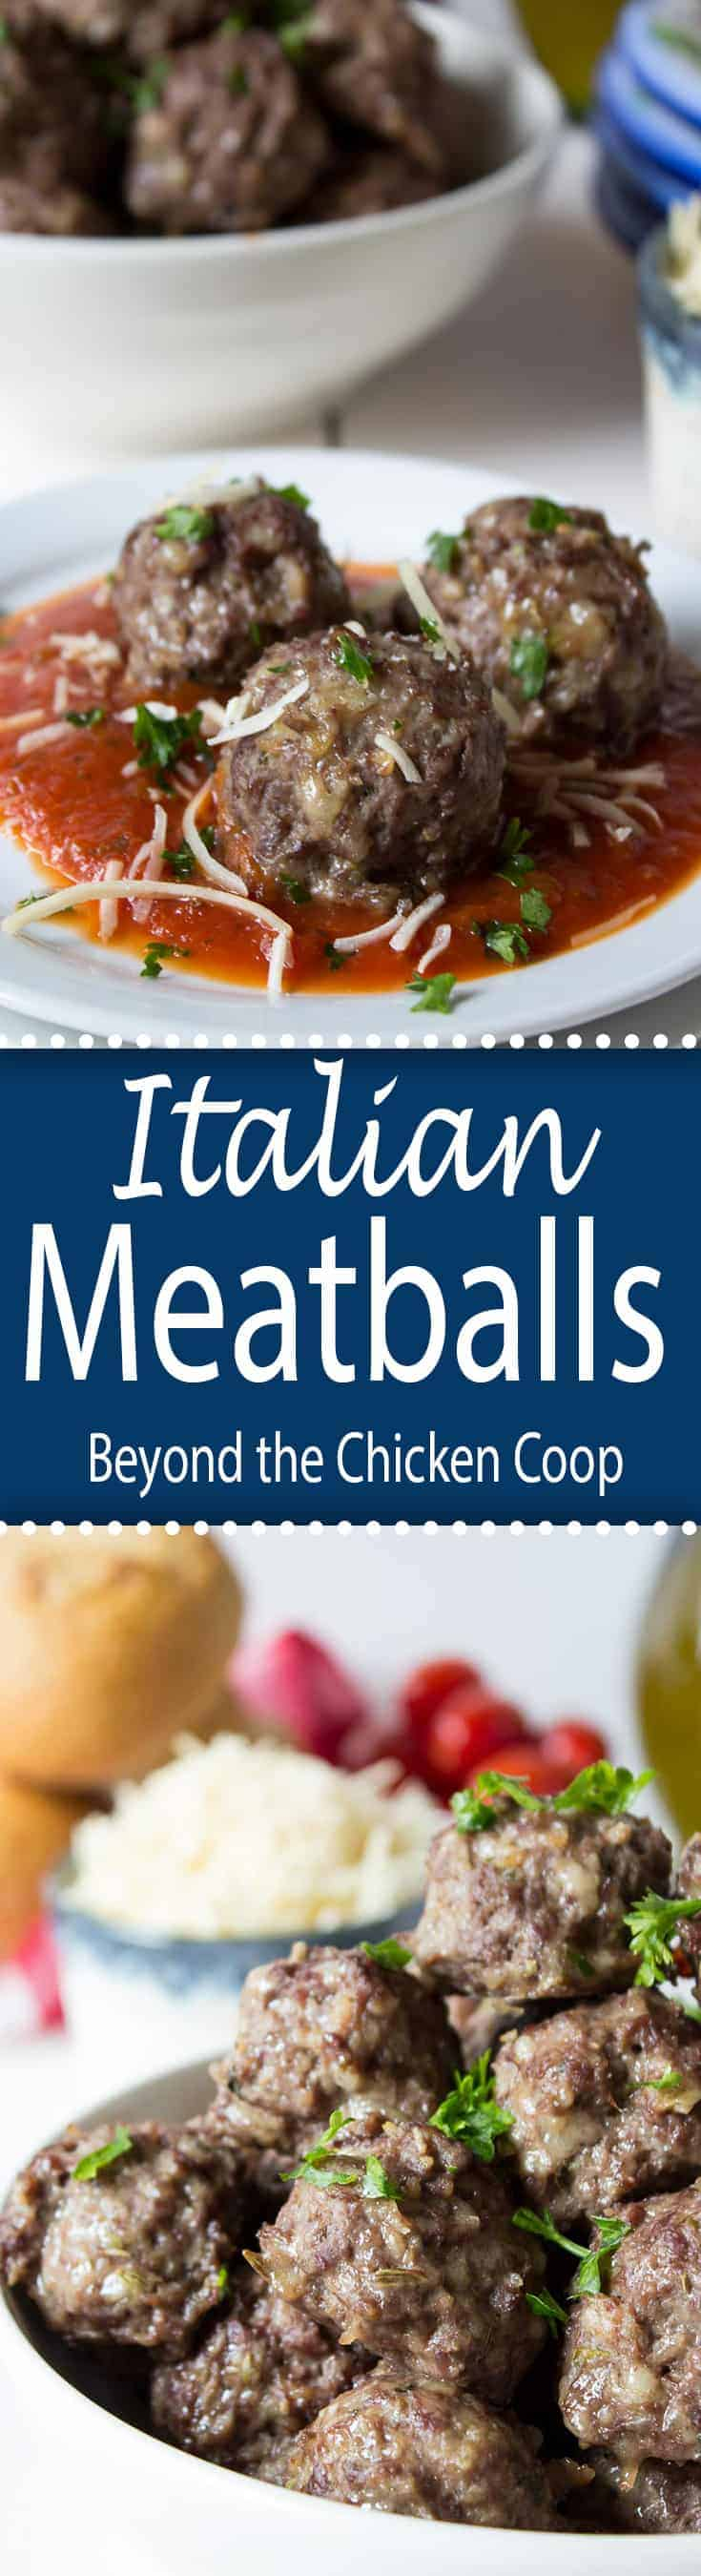 Italian style meatballs made with ground elk meat.